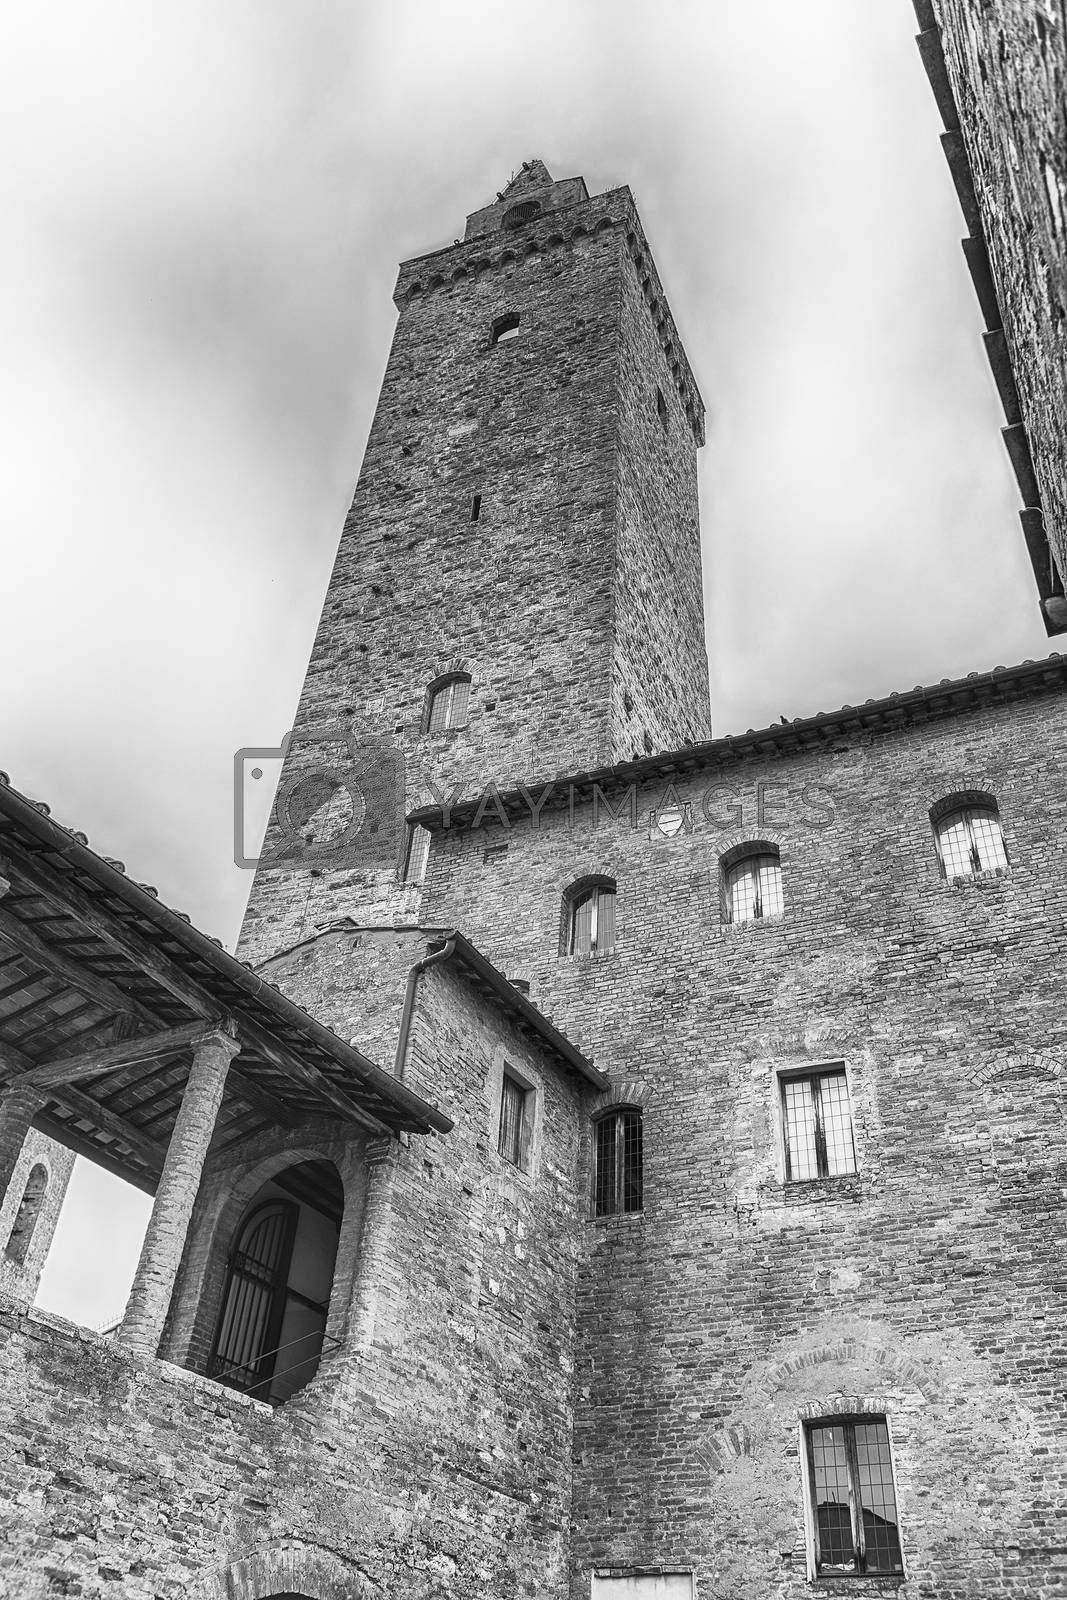 View of Torre Grossa, the tallest medieval tower and one of the main attractions in the central square of San Gimignano, Tuscany, Italy